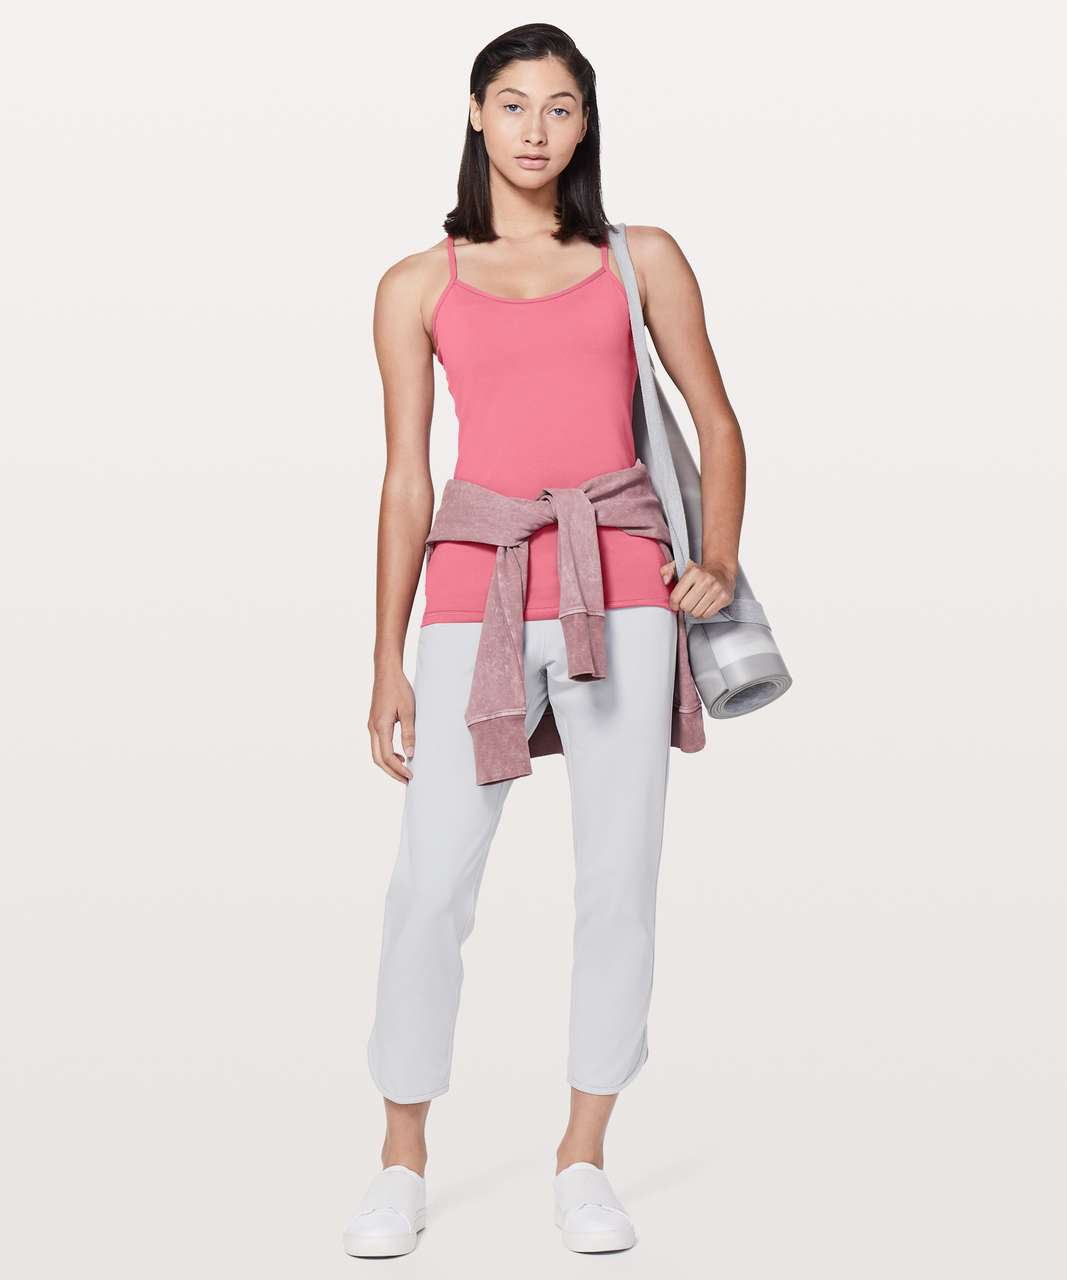 Lululemon Power Y Tank *Luon - Cherry Tint